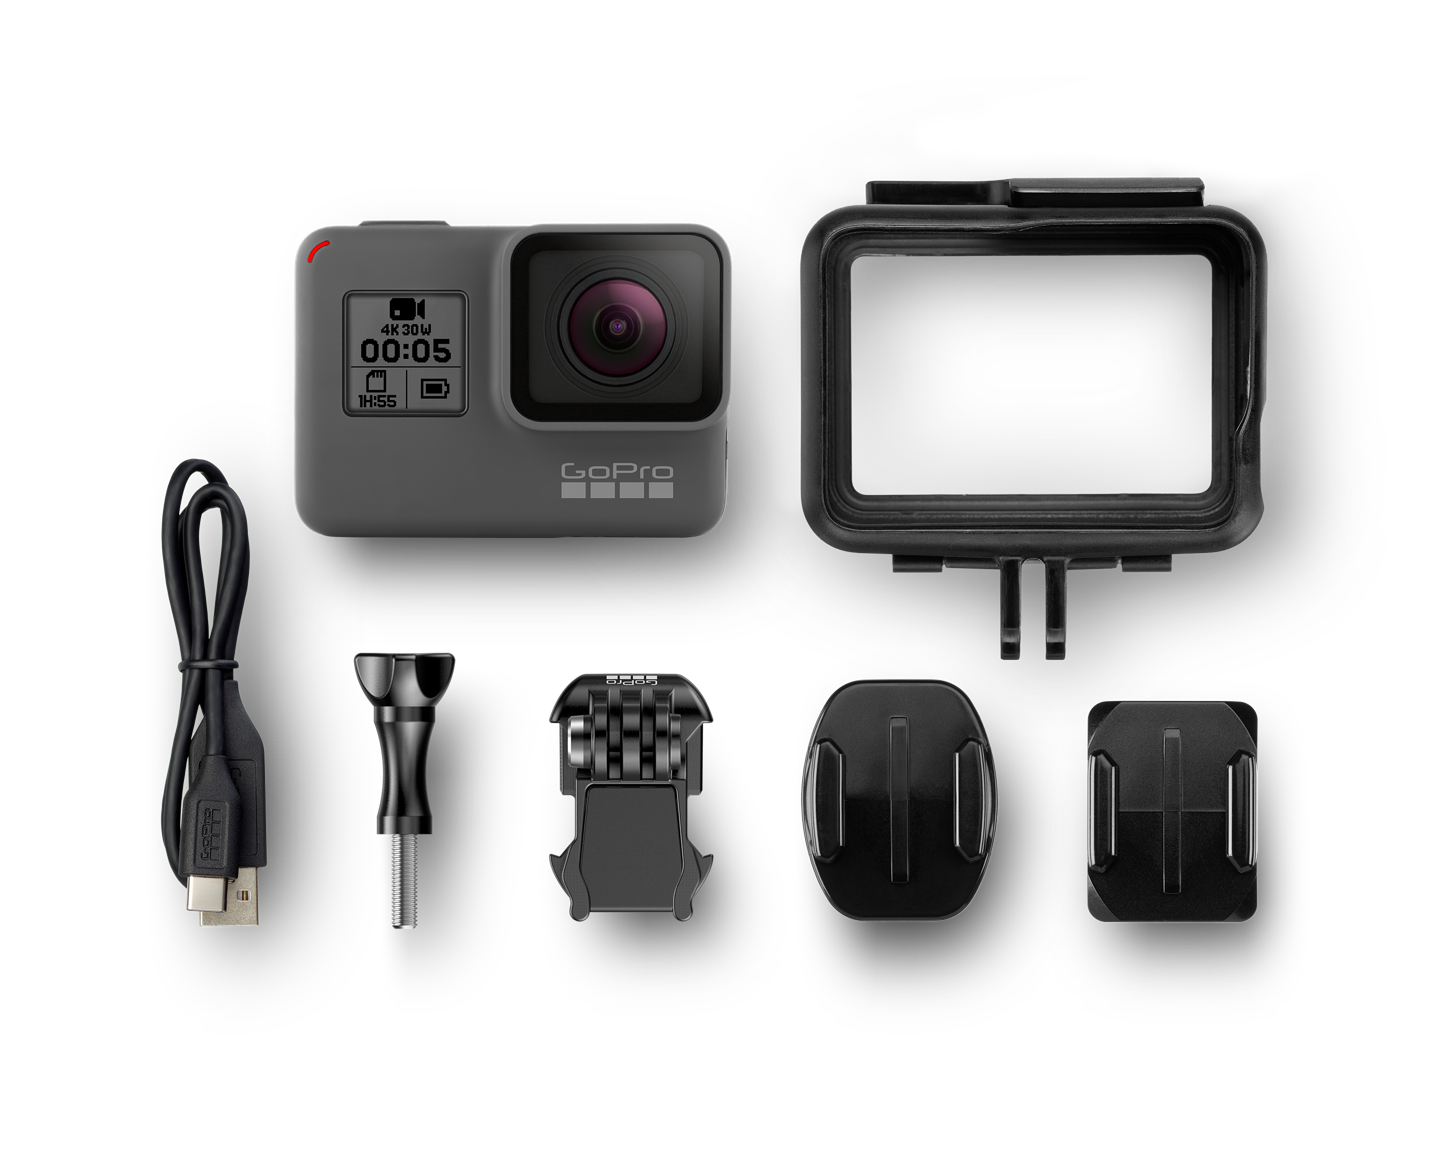 Gopro Action Cameras Evs Motors Inc Hero Hd Camera 5 Black